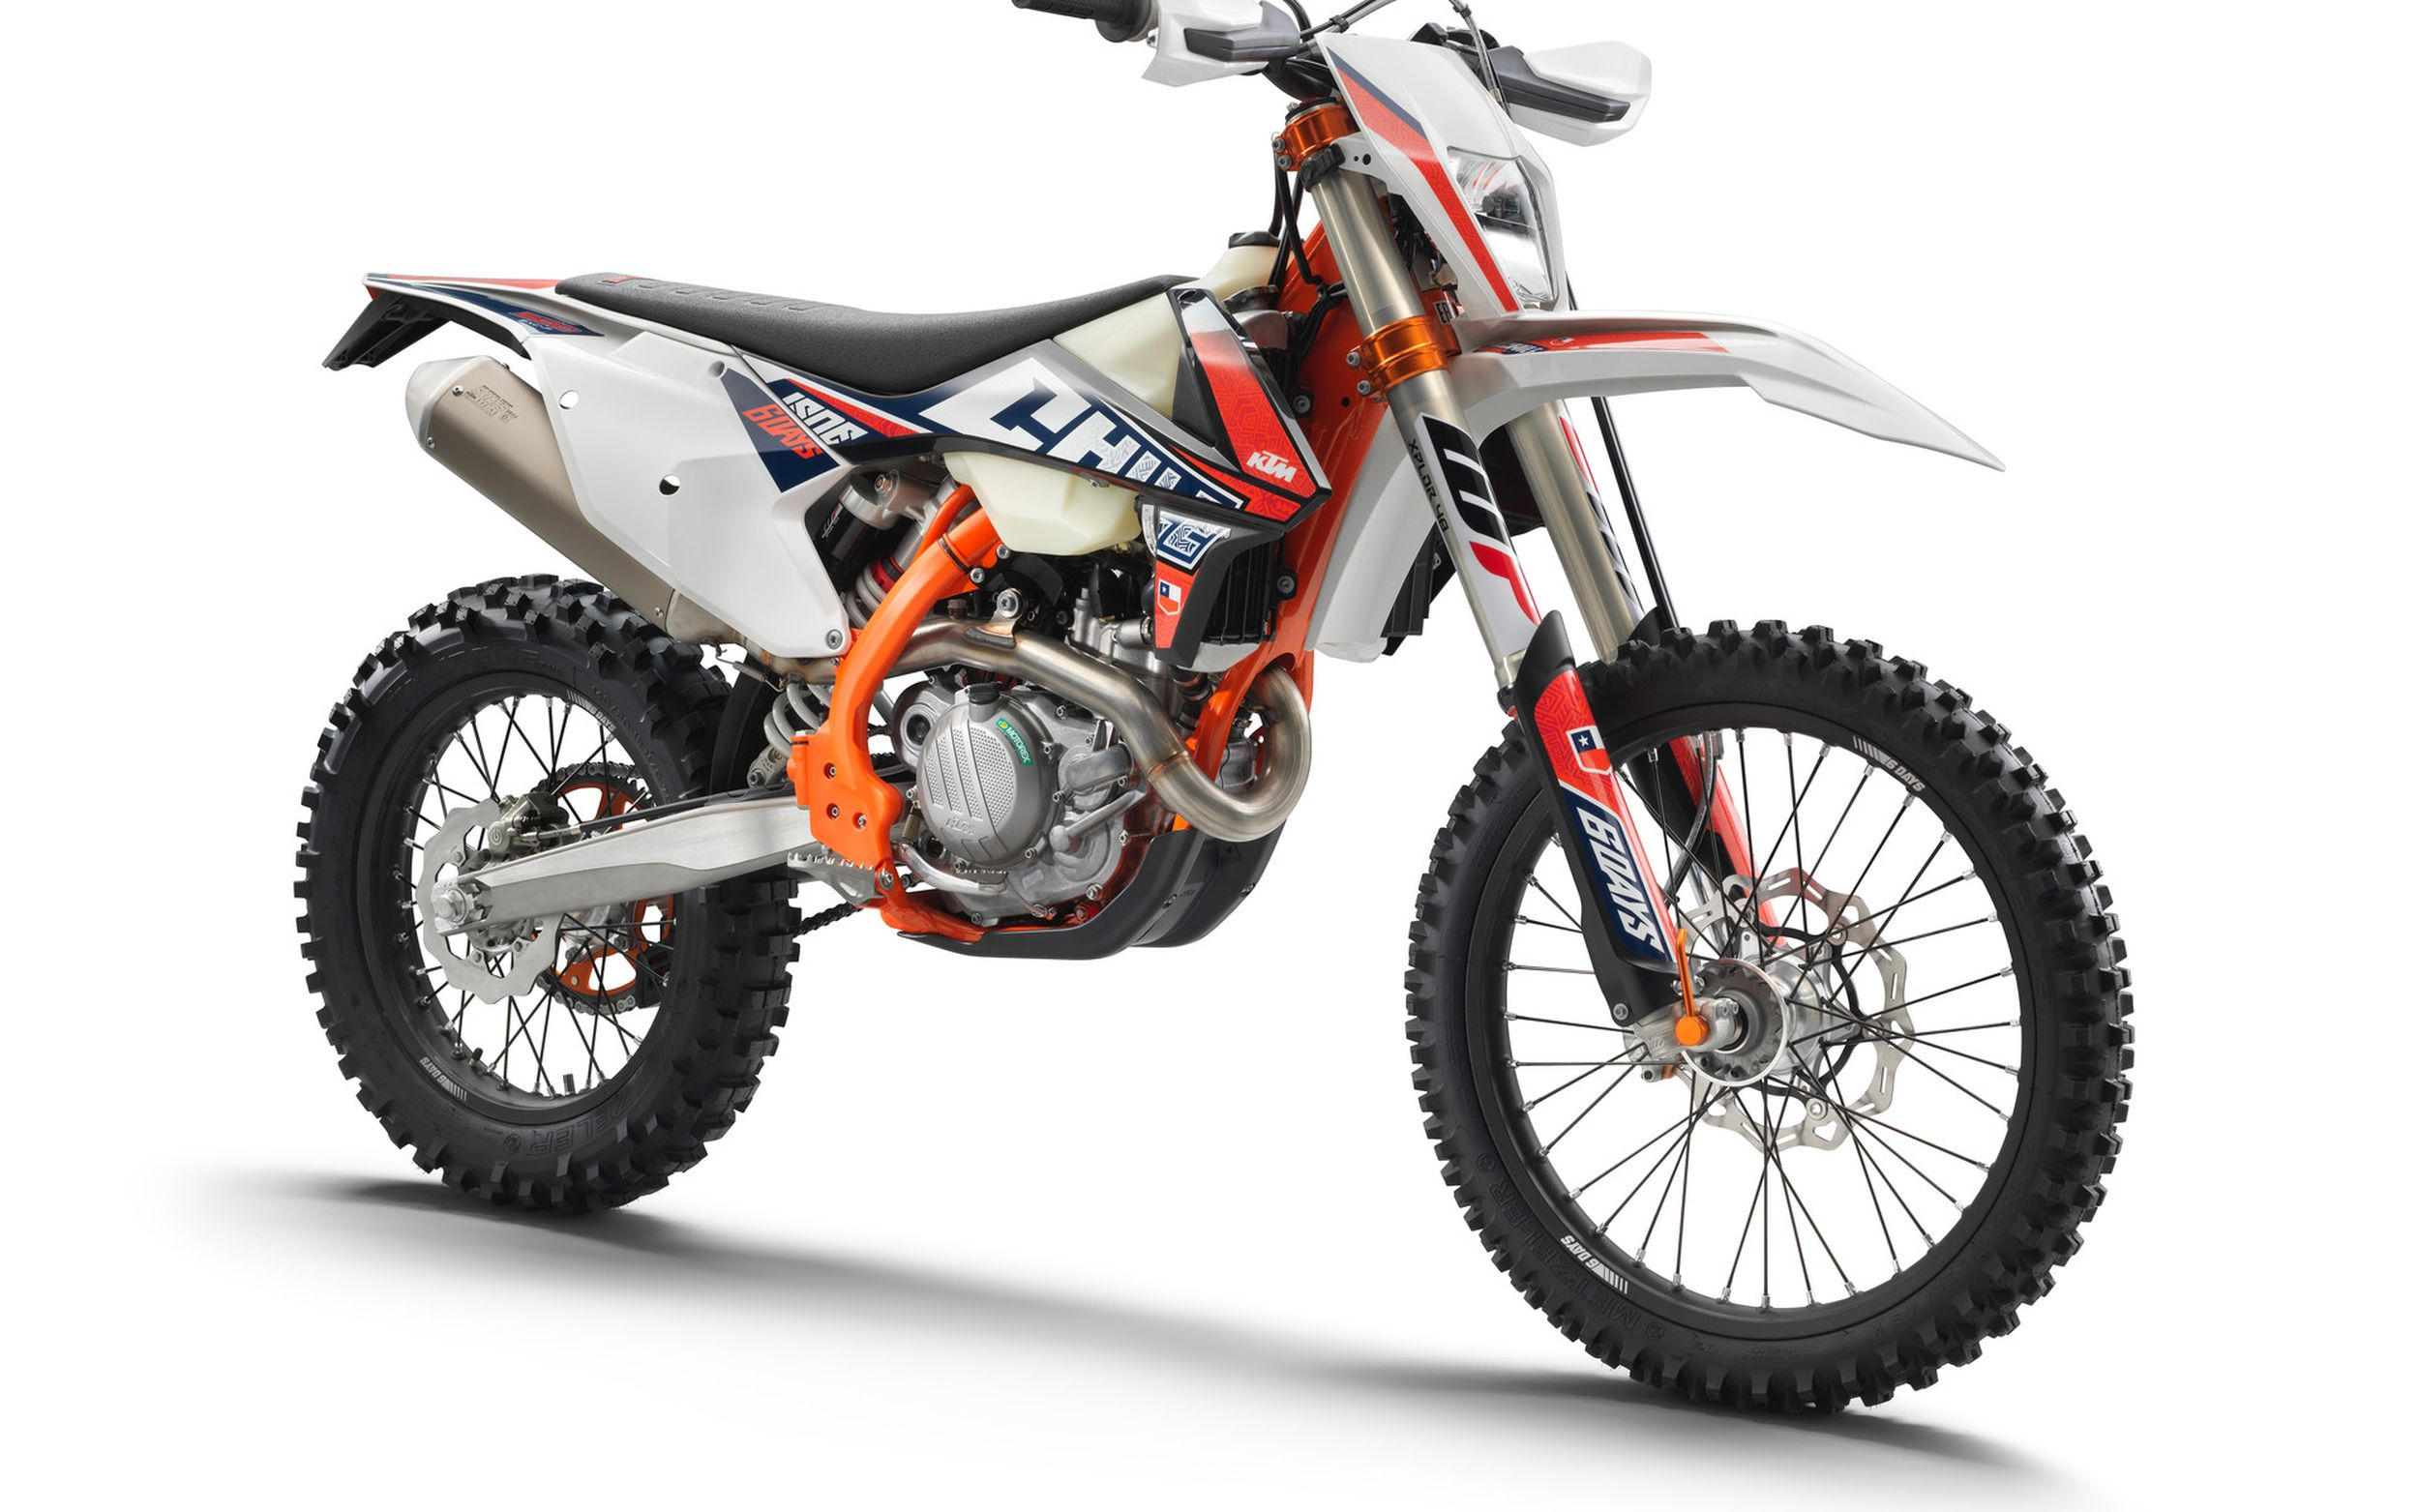 ktm 500 exc f sixdays all technical data of the model. Black Bedroom Furniture Sets. Home Design Ideas